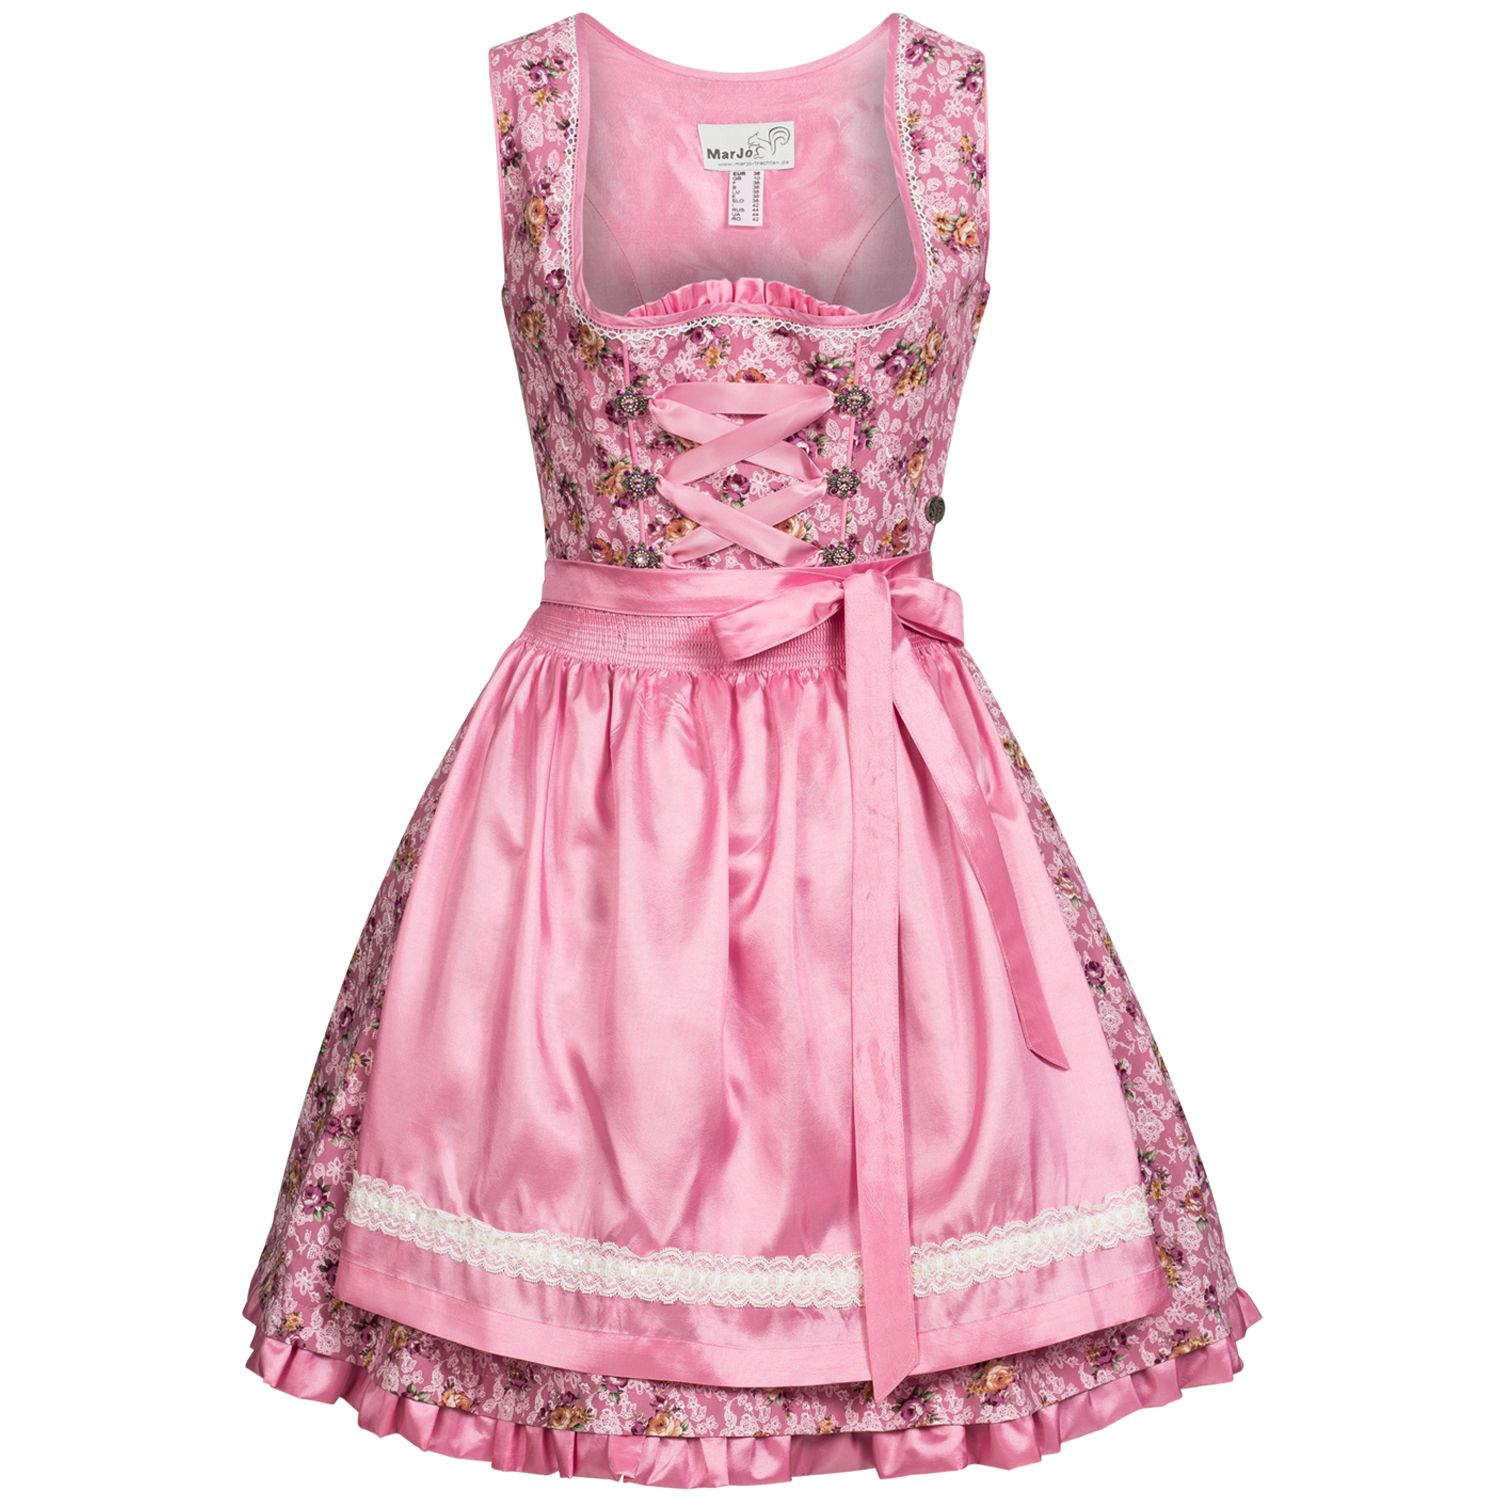 This Photo Will Open Big If You Click Through The Apron Uses Tight Smocking To Create The Gathers I Also Like The Small Ruffle A Dirndl Dirndl Rosa Modestil